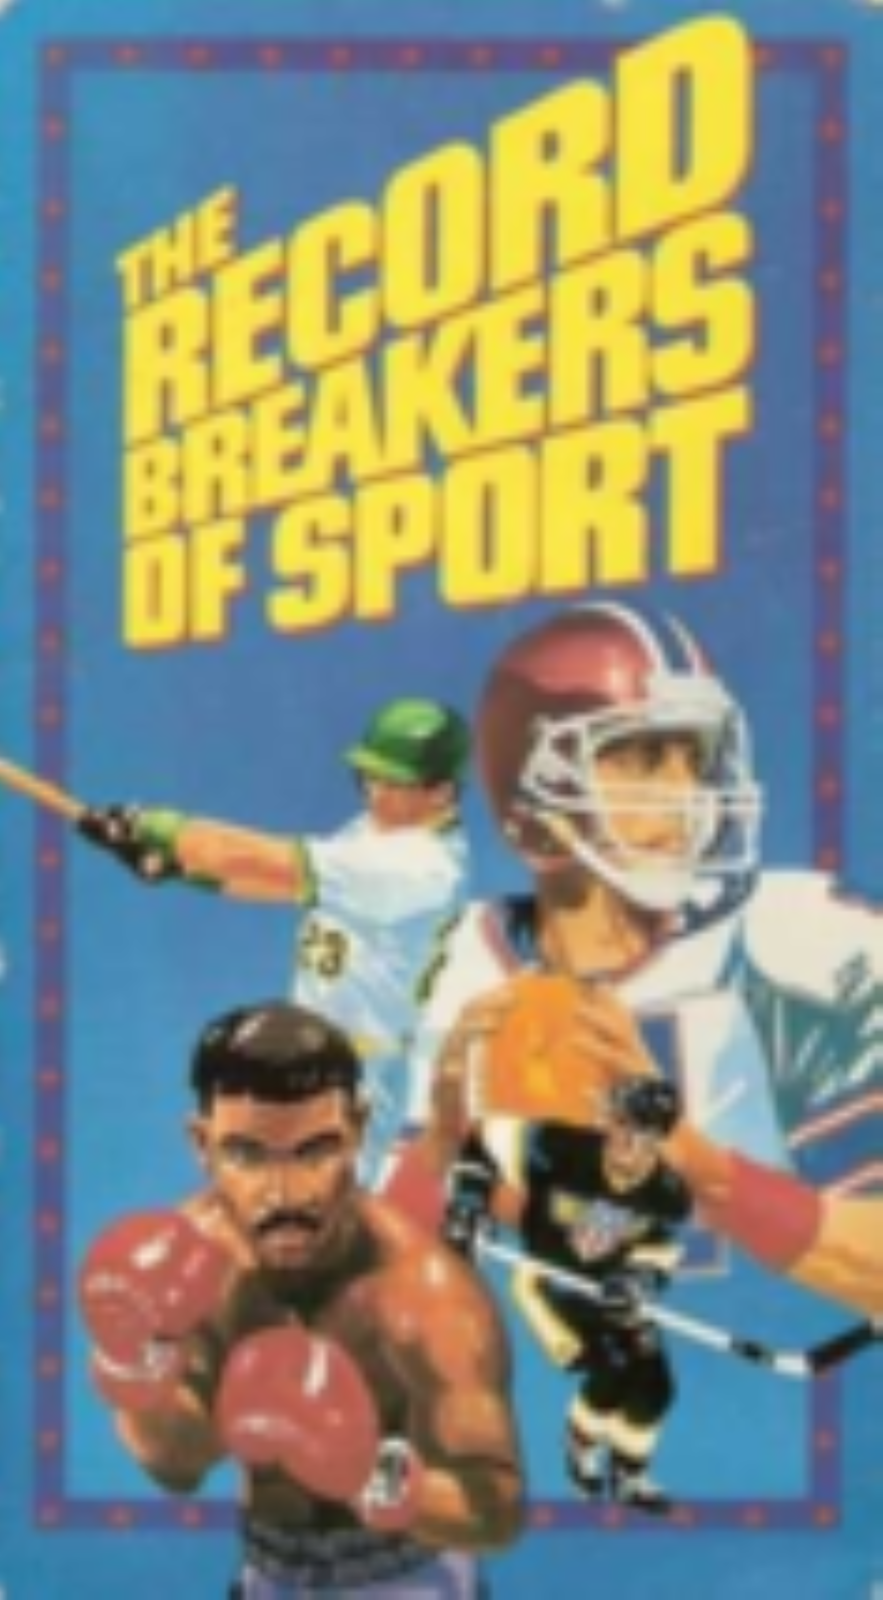 Record Breakers of Sport Vhs